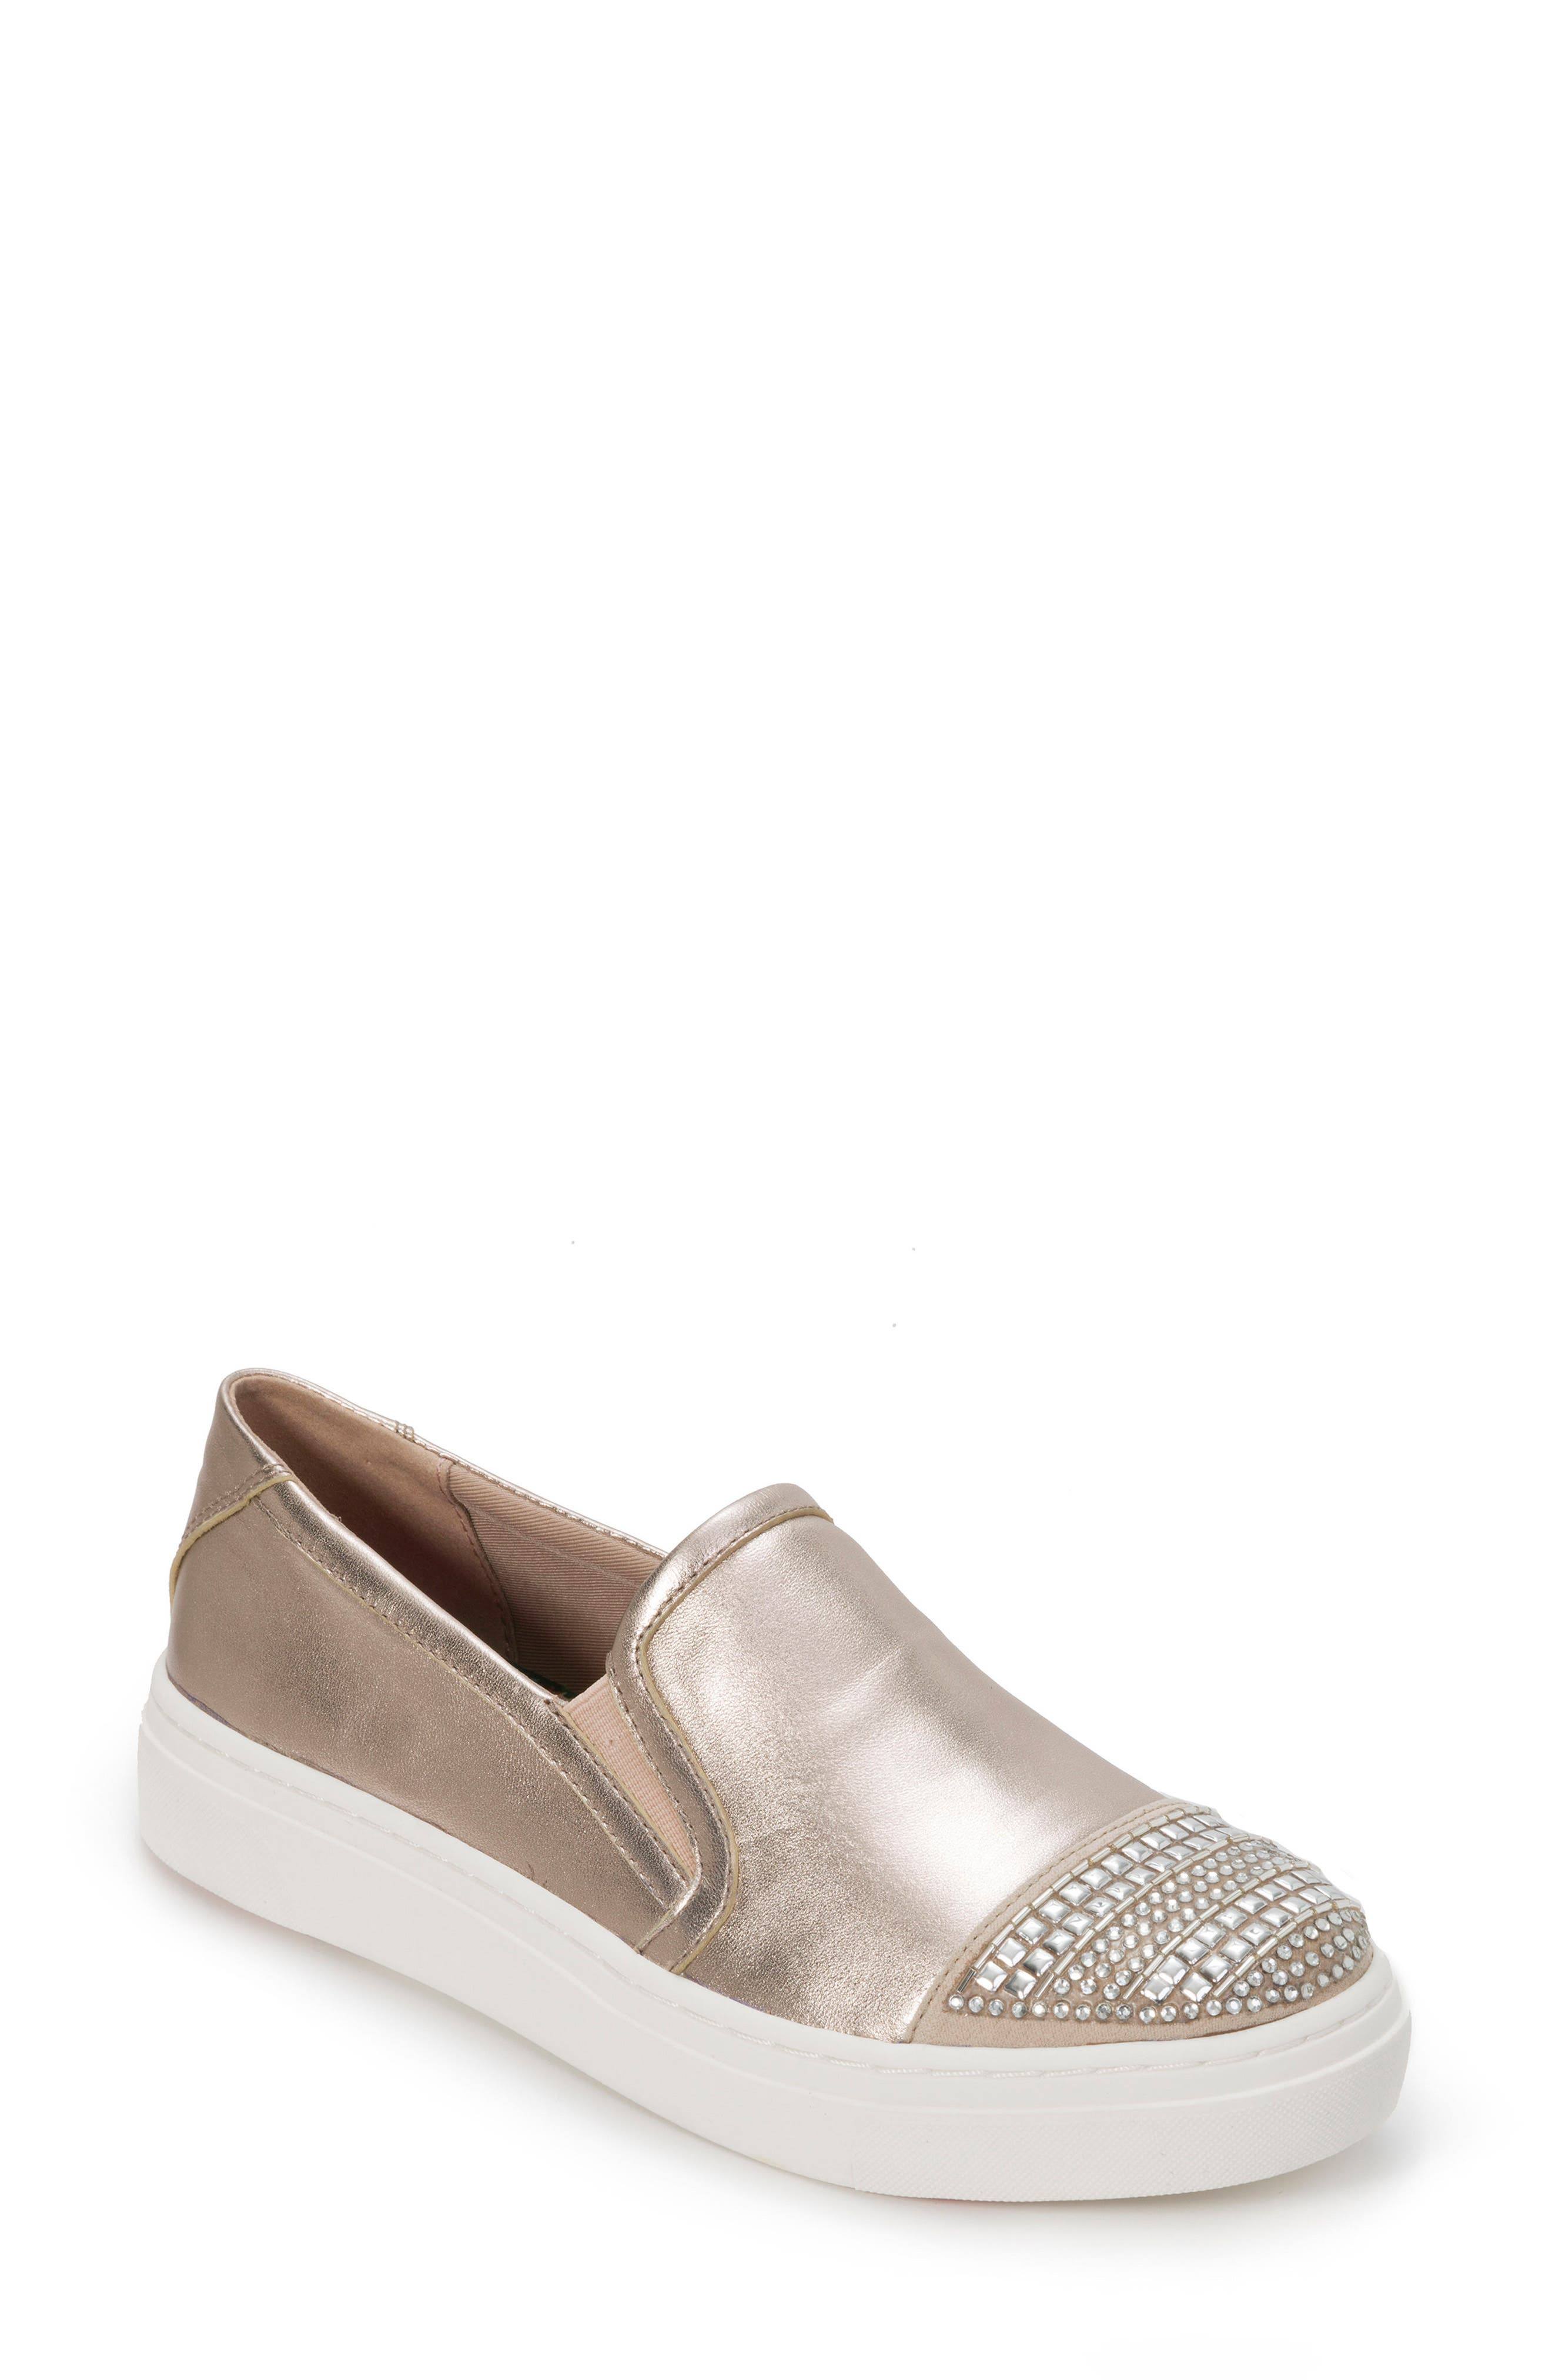 FOOT PETALS Finley Slip-On Sneaker in Champagne Leather